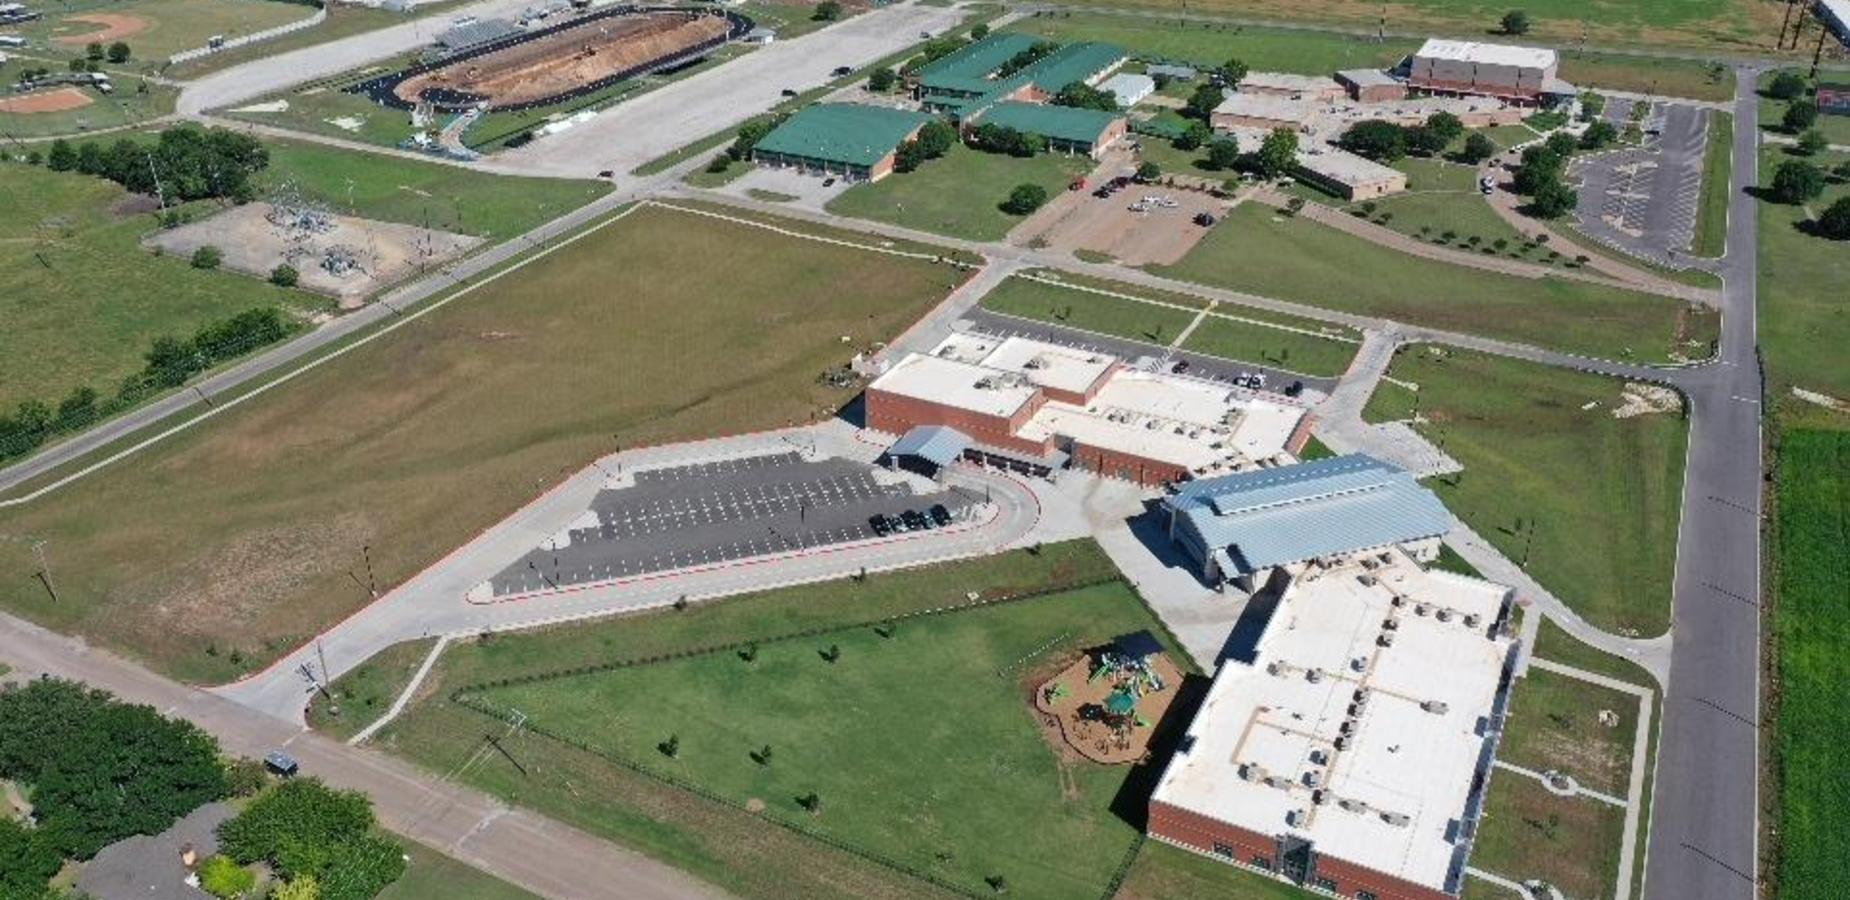 Clifton ISD Aerial View